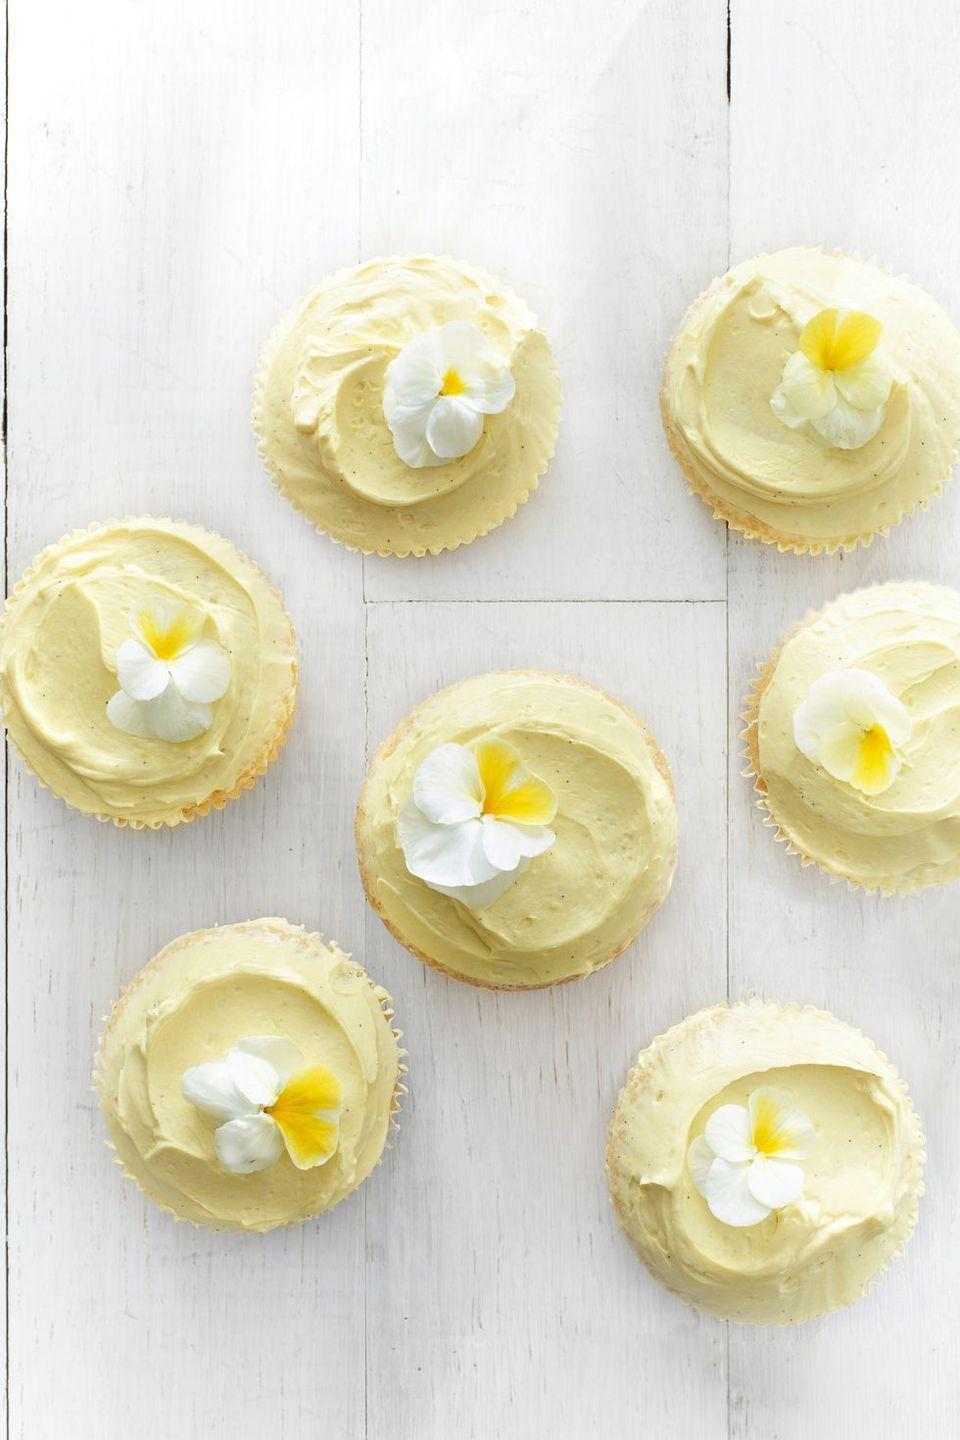 """<p>Edible flowers make even the simplest recipe (this buttermilk one, for example) much fancier. </p><p><em><a href=""""https://www.goodhousekeeping.com/food-recipes/a14645/buttermilk-cupcakes-recipe-clx0315/"""" rel=""""nofollow noopener"""" target=""""_blank"""" data-ylk=""""slk:Get the recipe for Buttermilk Cupcakes »"""" class=""""link rapid-noclick-resp"""">Get the recipe for Buttermilk Cupcakes »</a></em></p>"""